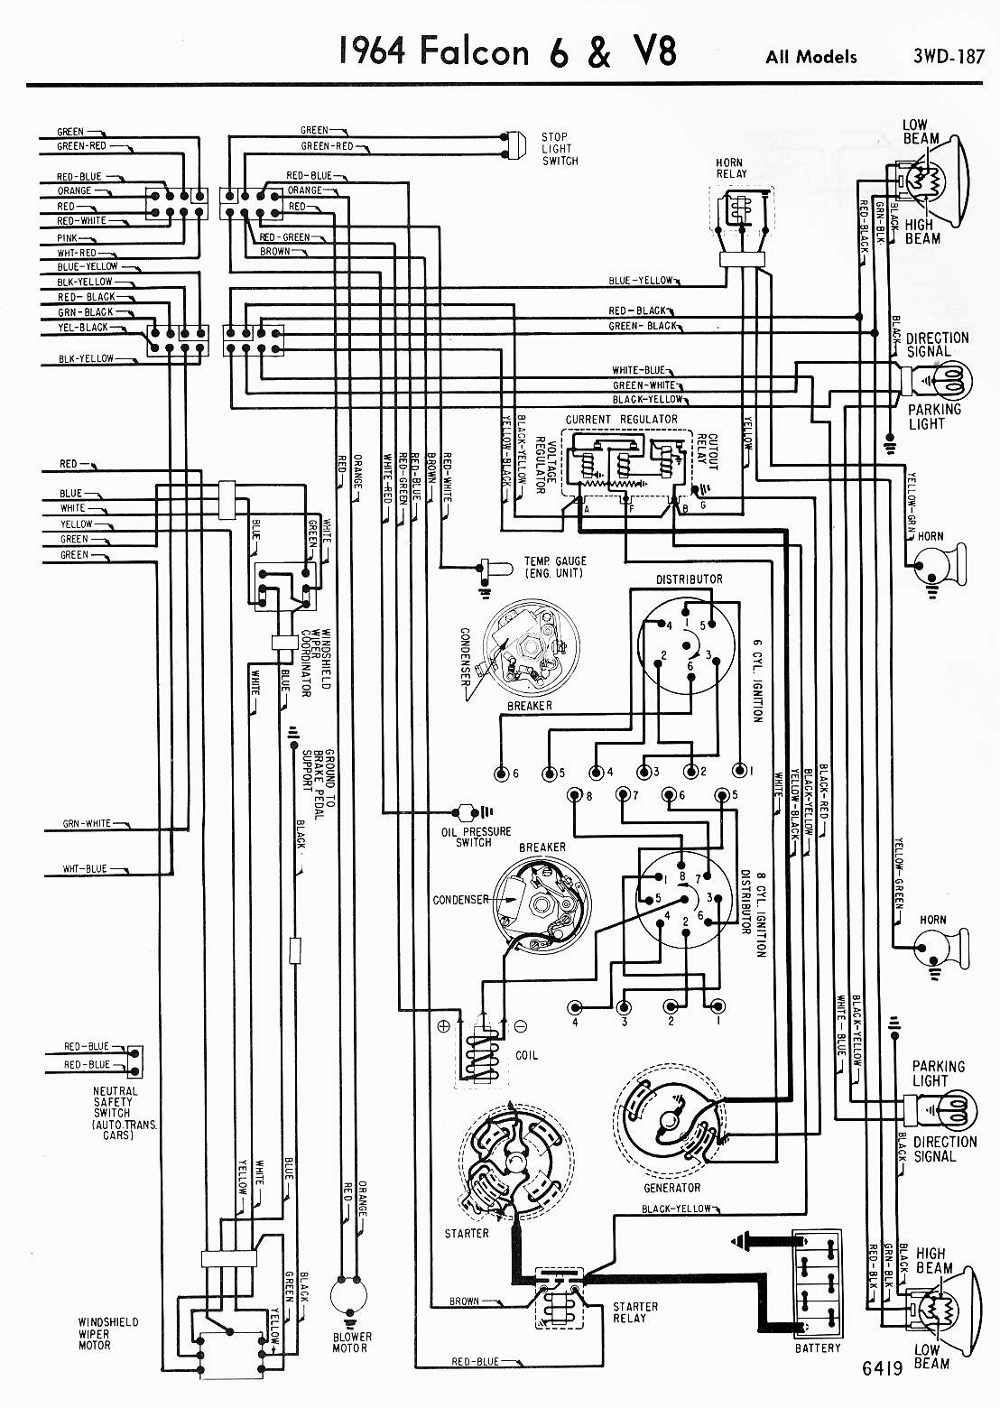 1964 ford falcon wiring diagram | wiring diagrams of 1964 ford 6 and v8  falcon all models part 2